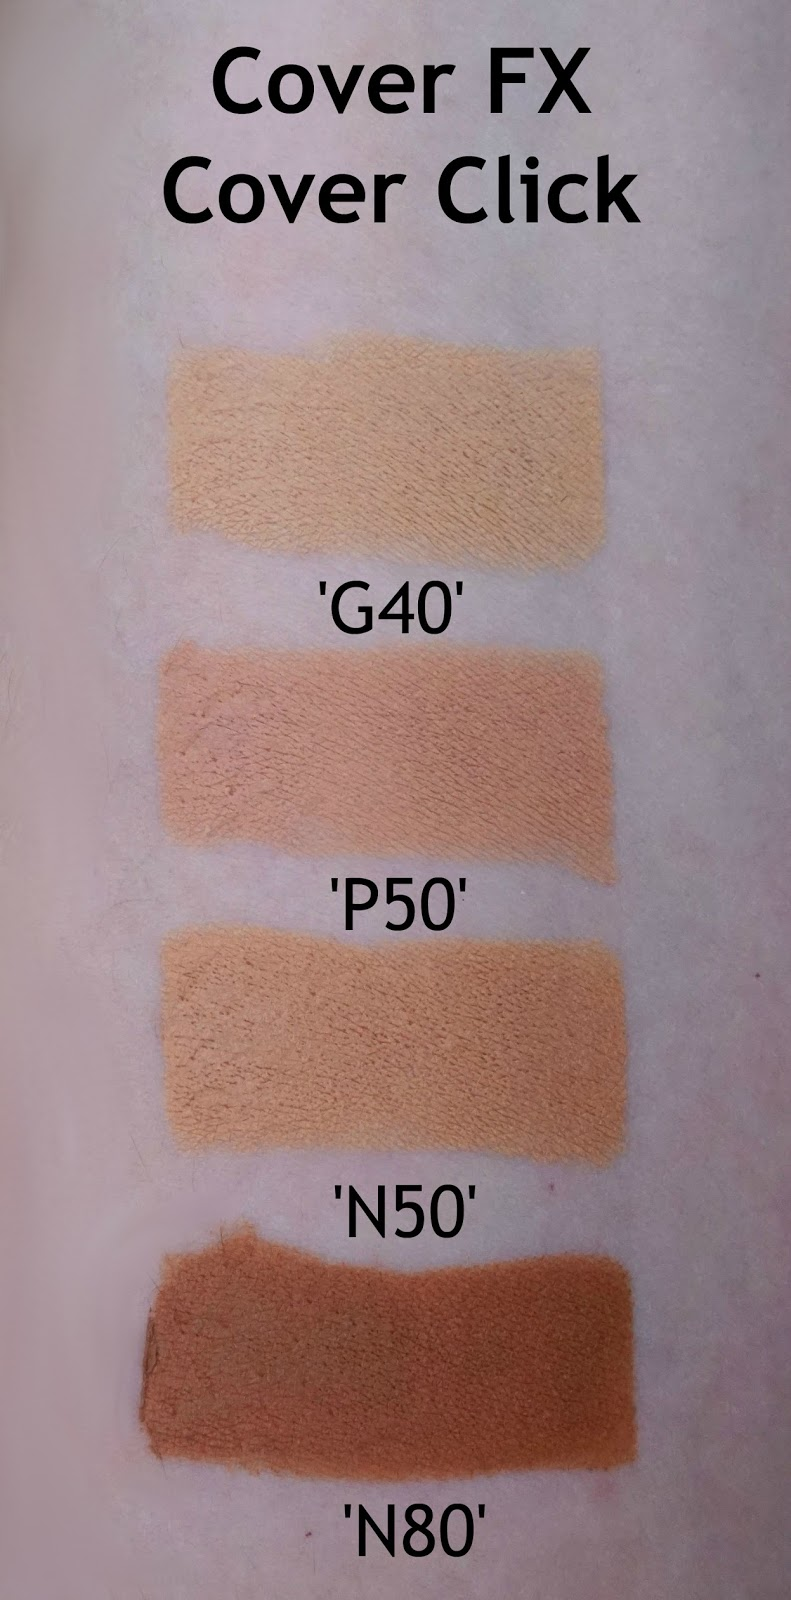 Cover FX Cover Click in 'G40', 'P50', 'N50', and 'N80' review swatch